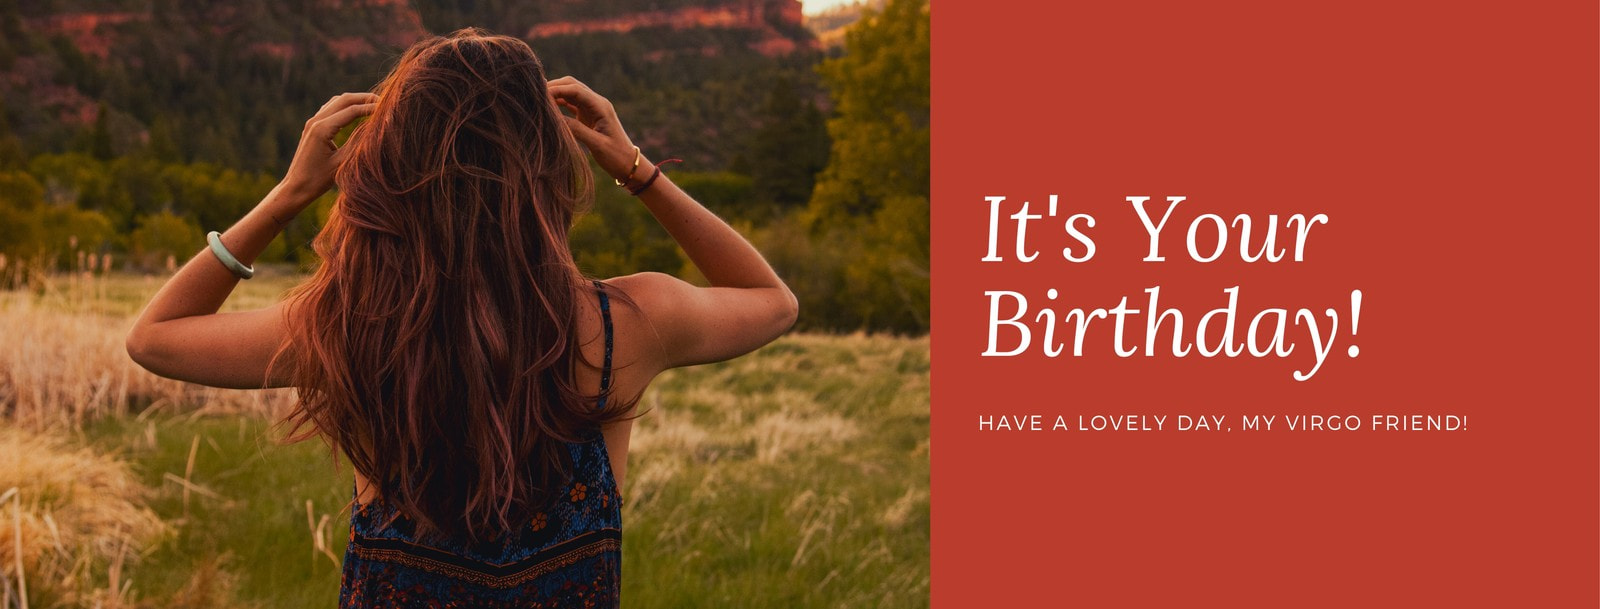 Red Boho Woman Virgo Birthday Greeting Facebook Cover